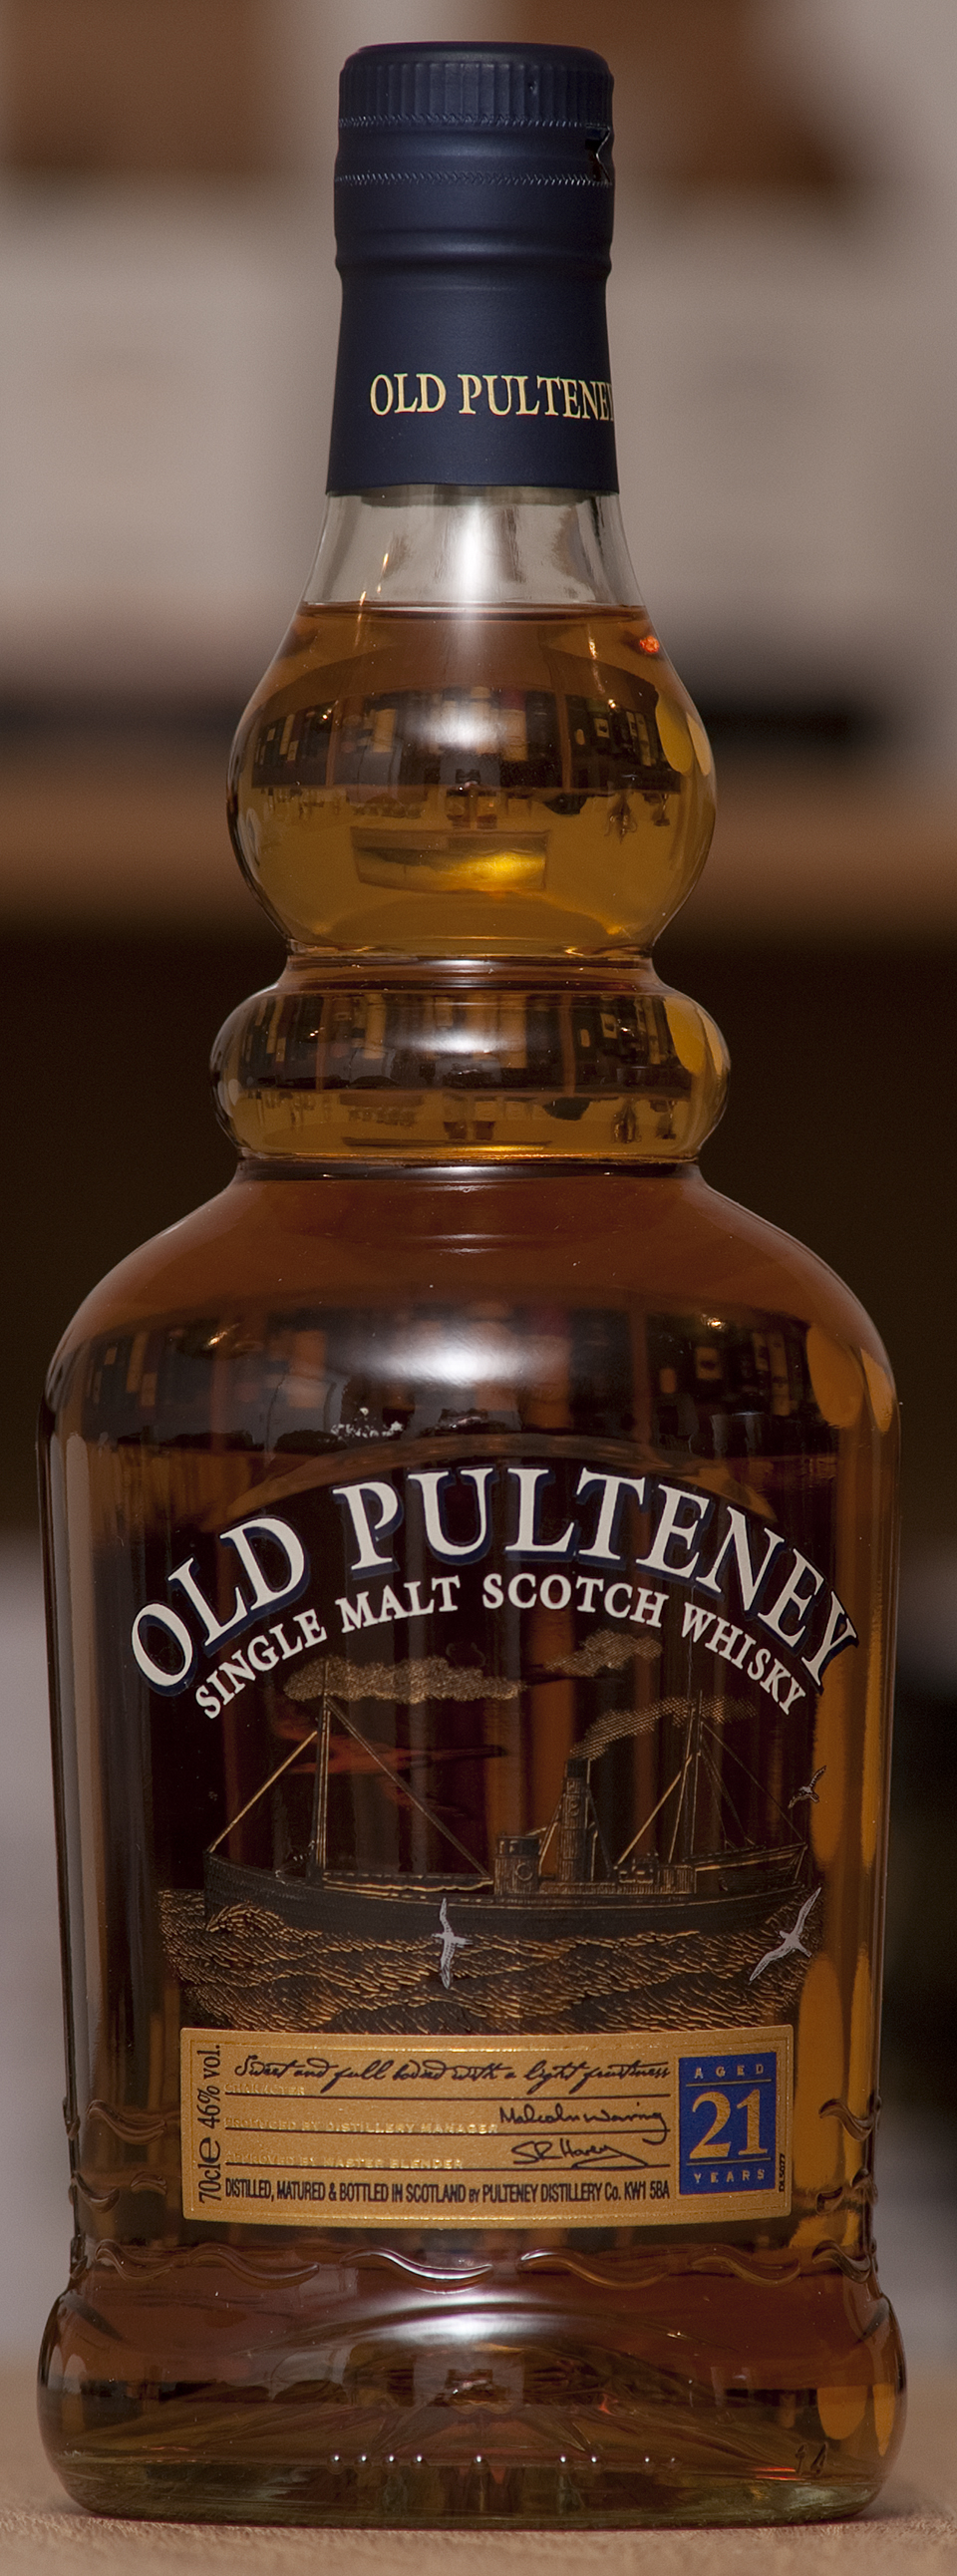 Billede: Old_Pulteney_21_large.jpg